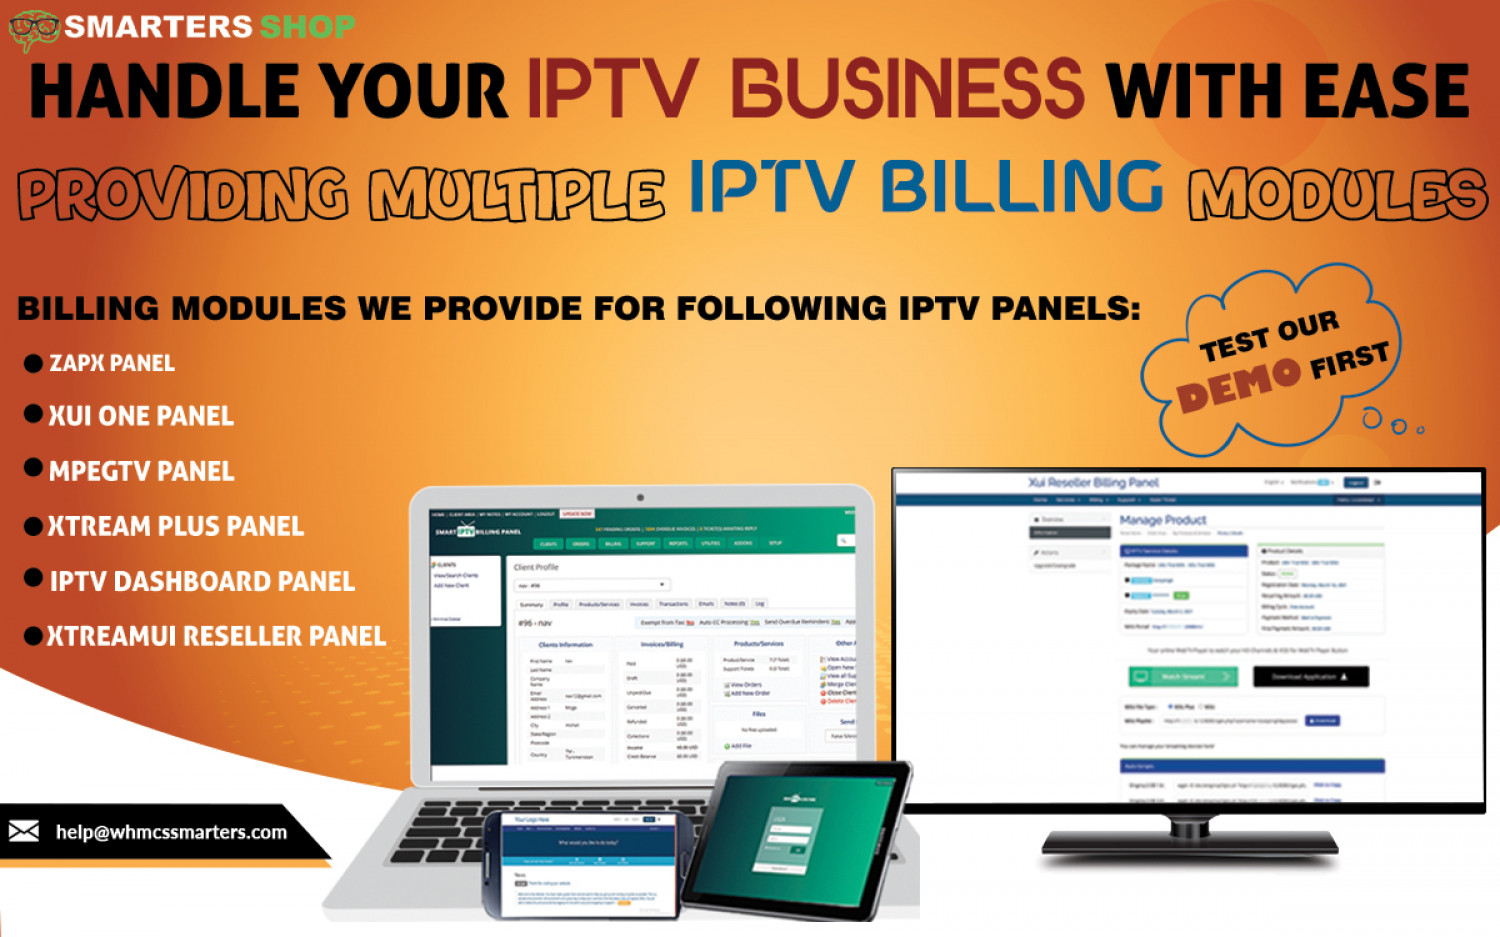 HANDLE YOUR IPTV BUSINESS EASILY USING OUR IPTV BILLING MODULES Infographic